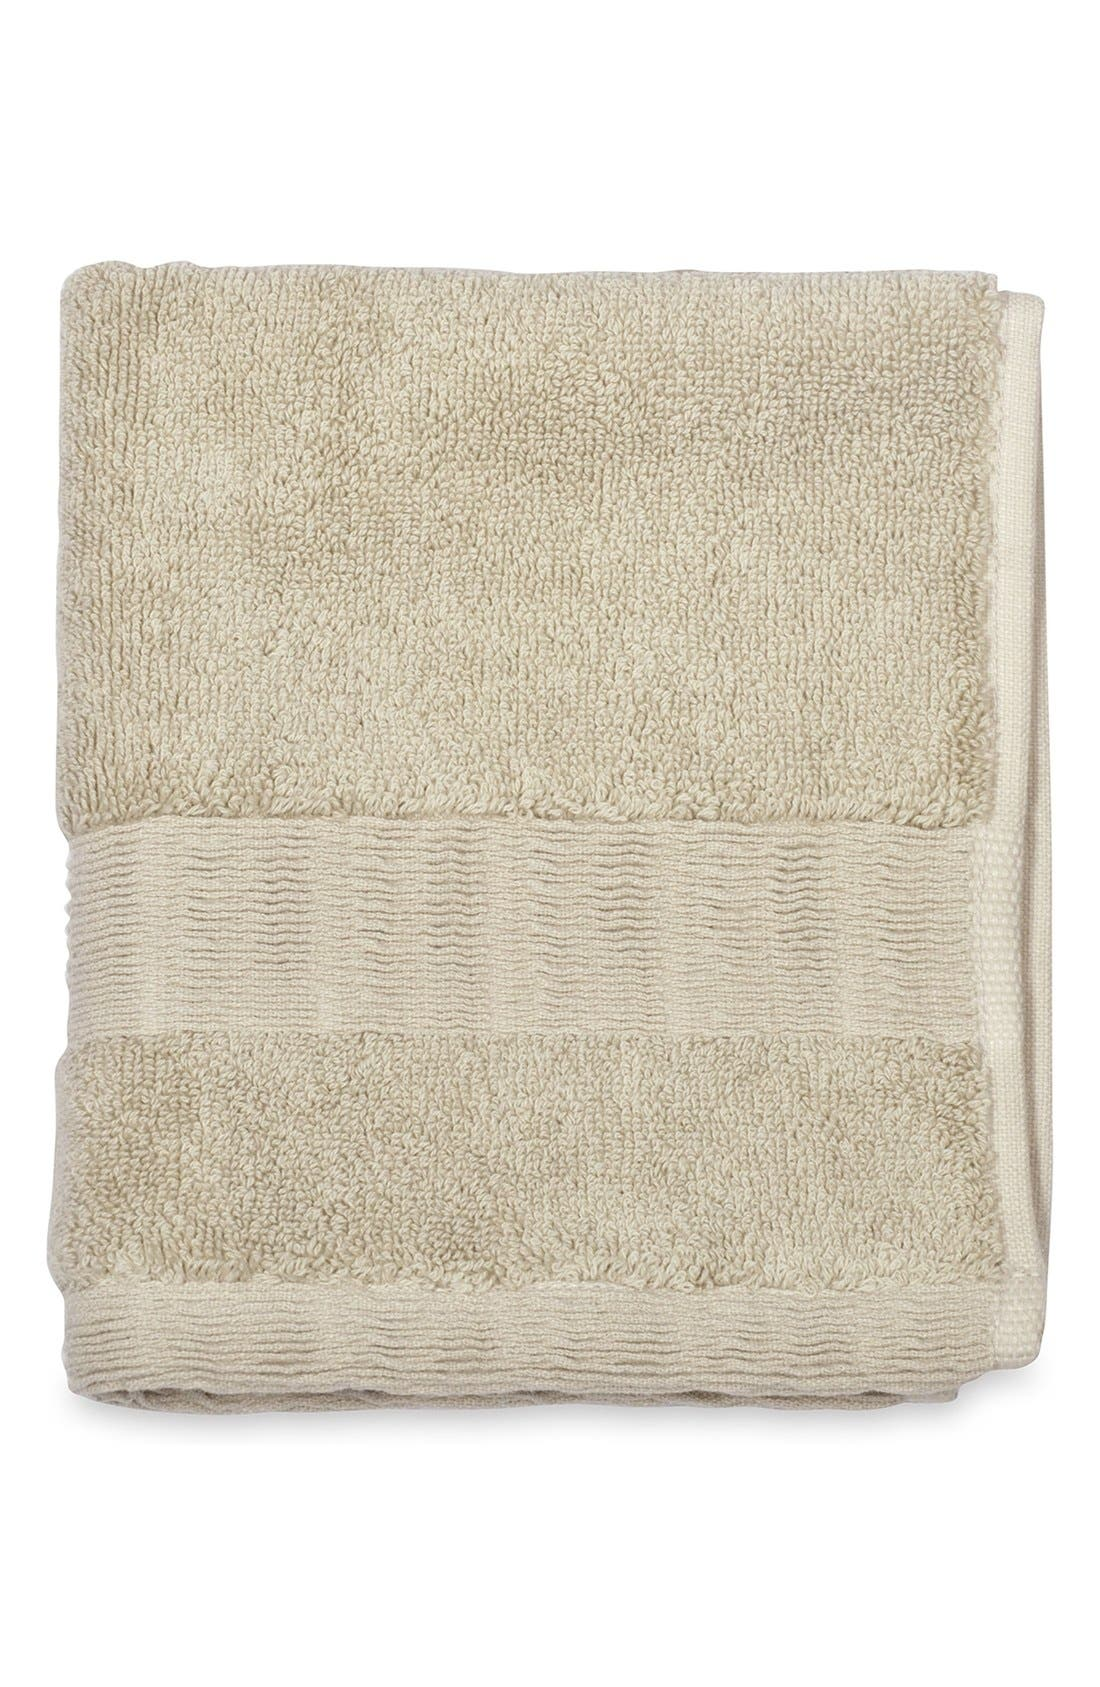 Mercer Wash Towel,                         Main,                         color, STONE